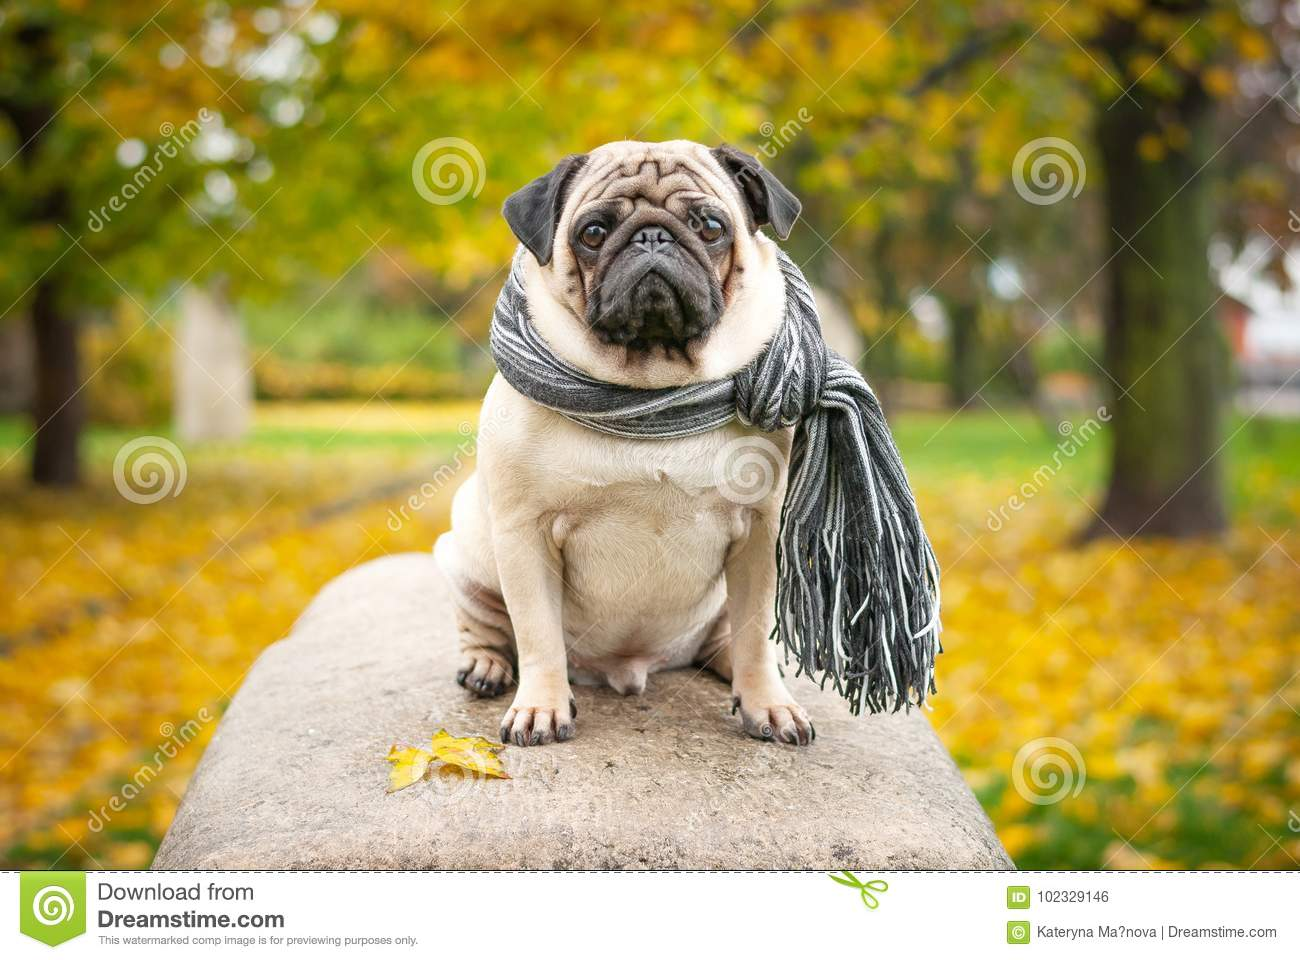 Dating site for pug lovers